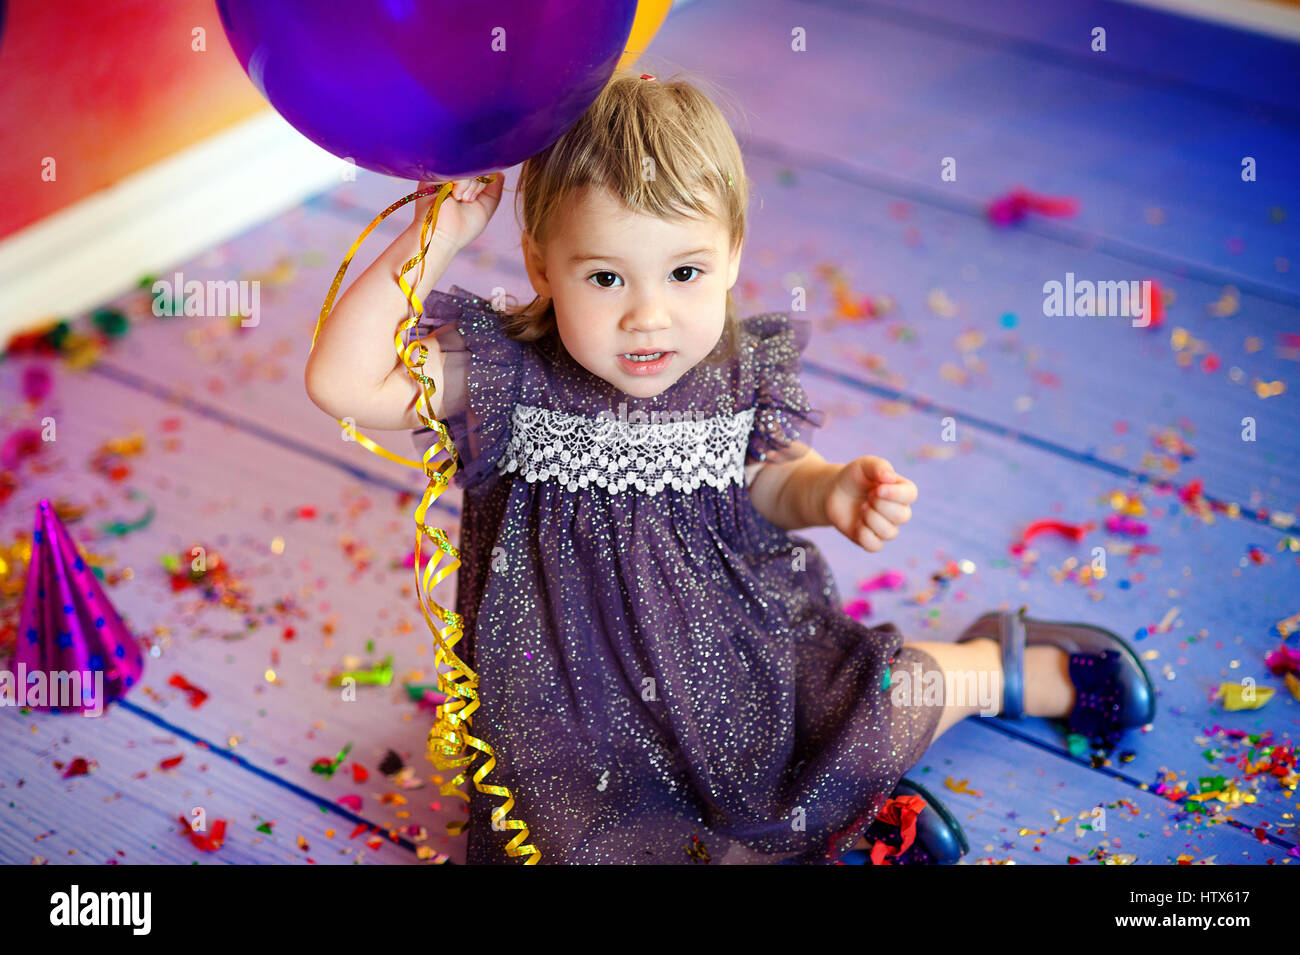 Cute baby girl 1-2 year old sitting on floor with pink balloons in room. Birthday party. Celebration. Happy birthday - Stock Image